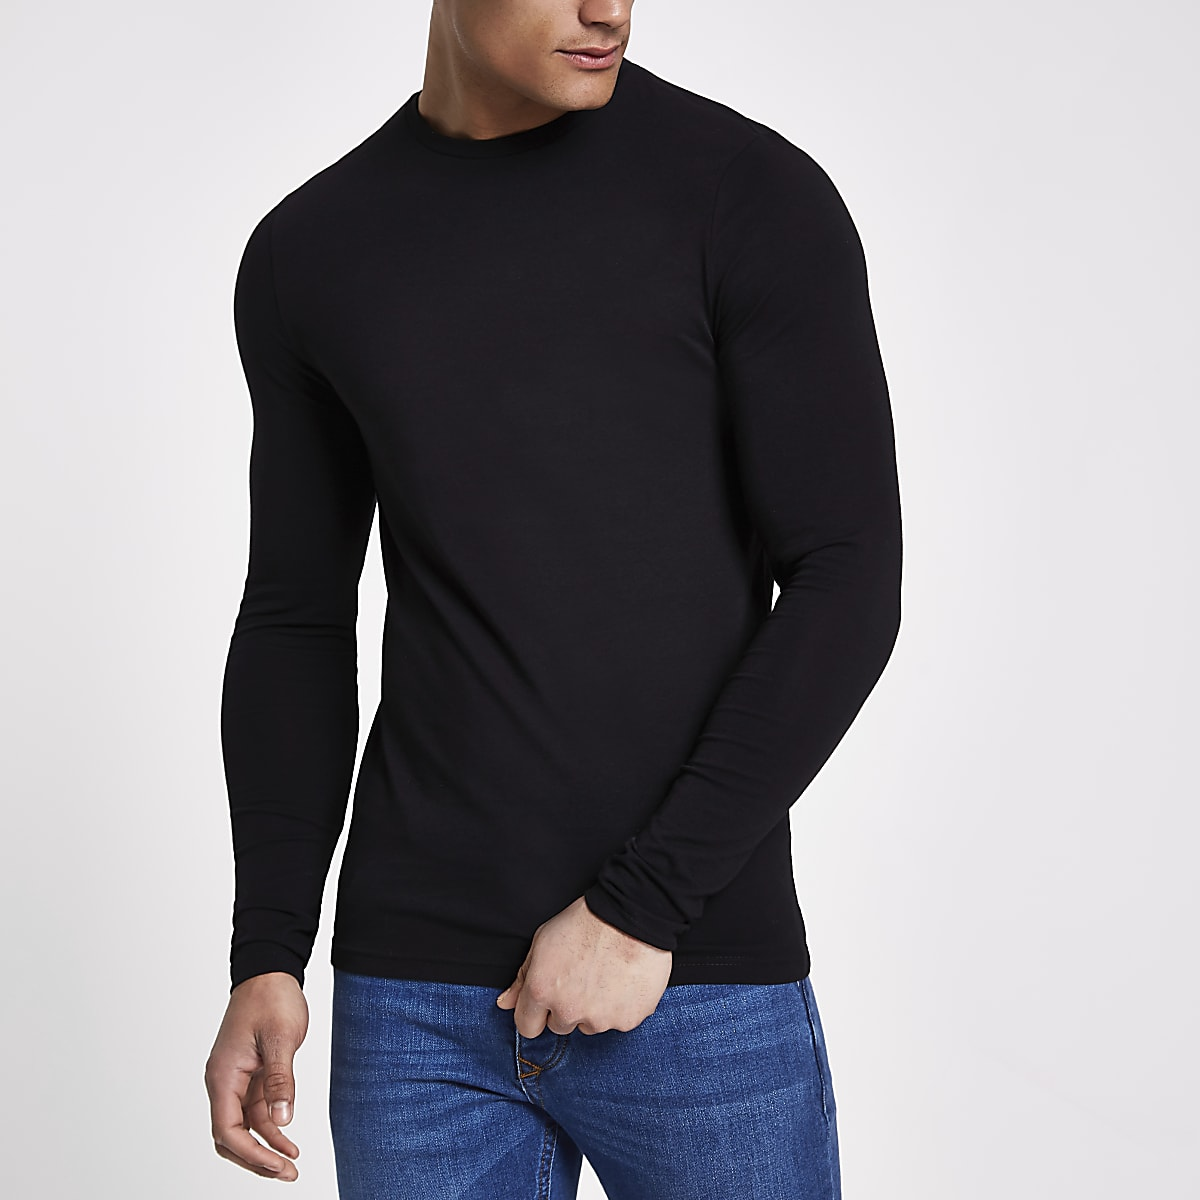 Black muscle fit long sleeve T-shirt